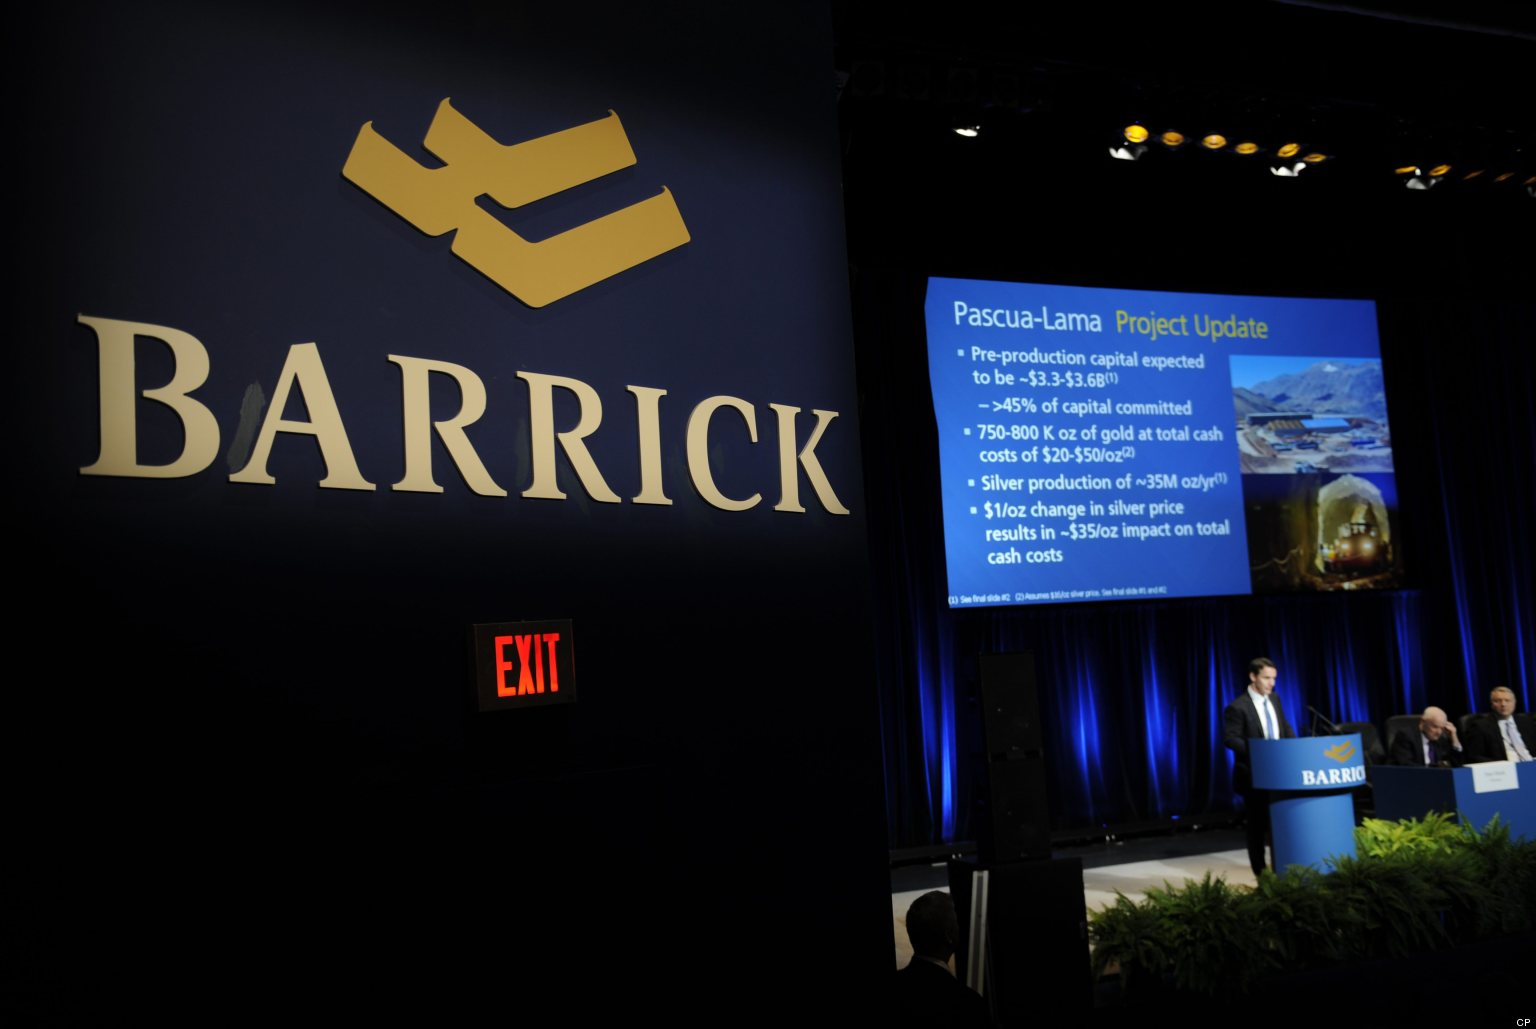 o-BARRICK-GOLD-CEO-PAY-JOHN-THORNTON-fac